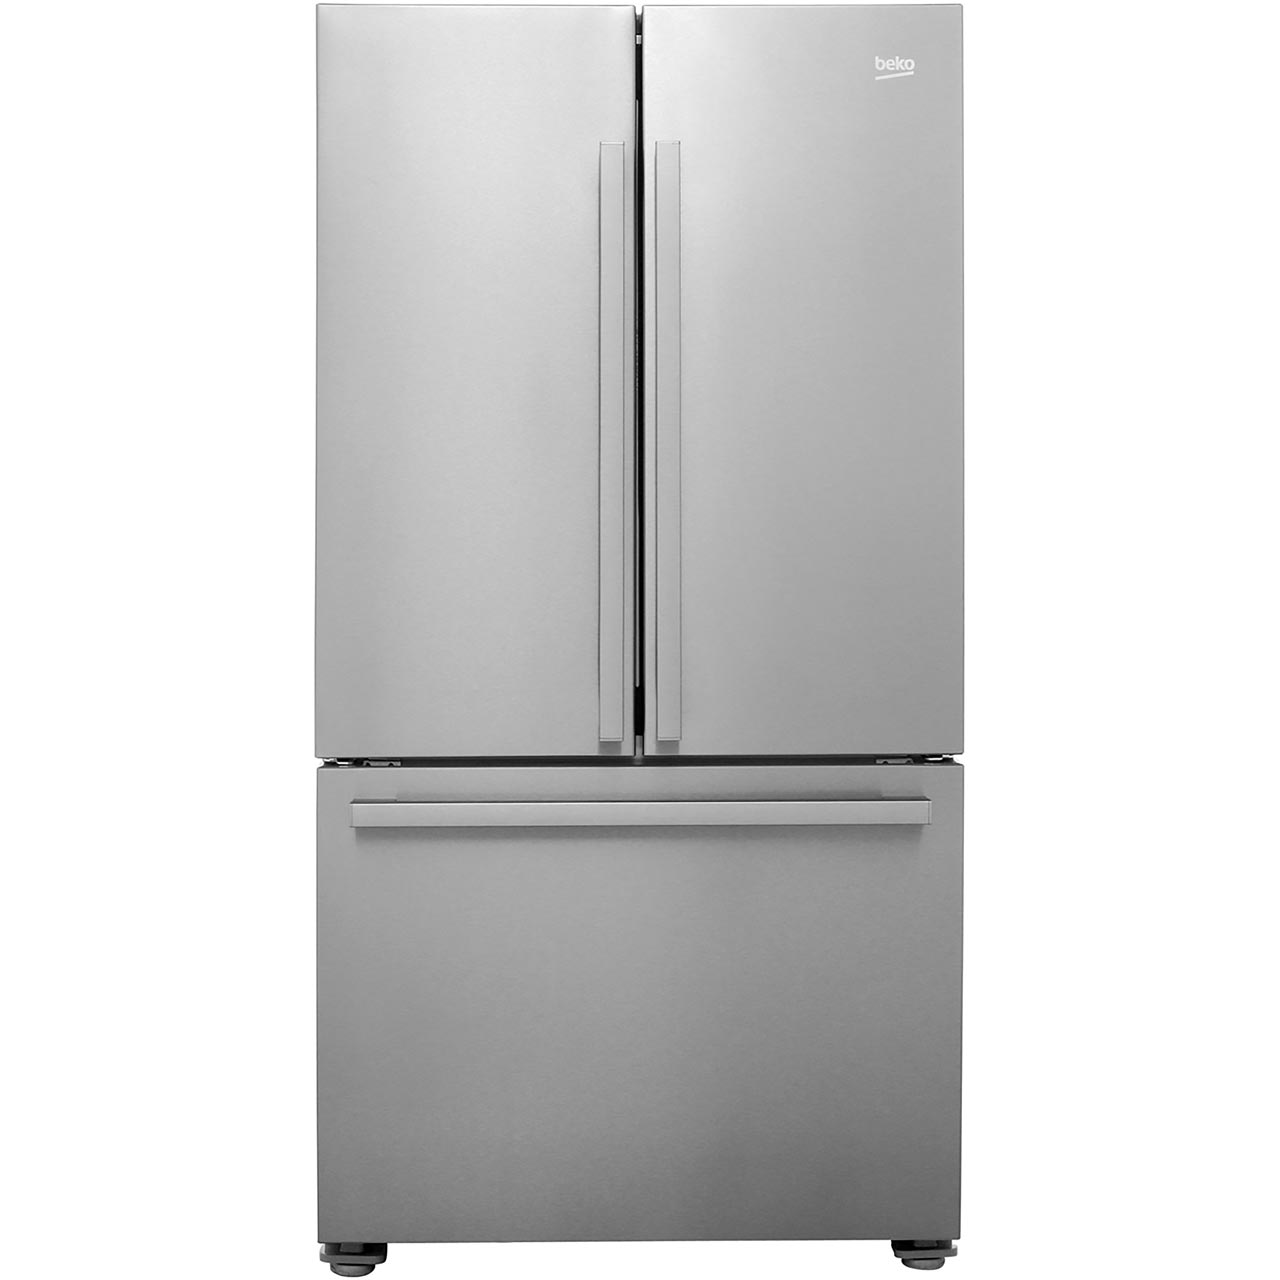 gn1306211zdx ss beko american fridge freezer. Black Bedroom Furniture Sets. Home Design Ideas